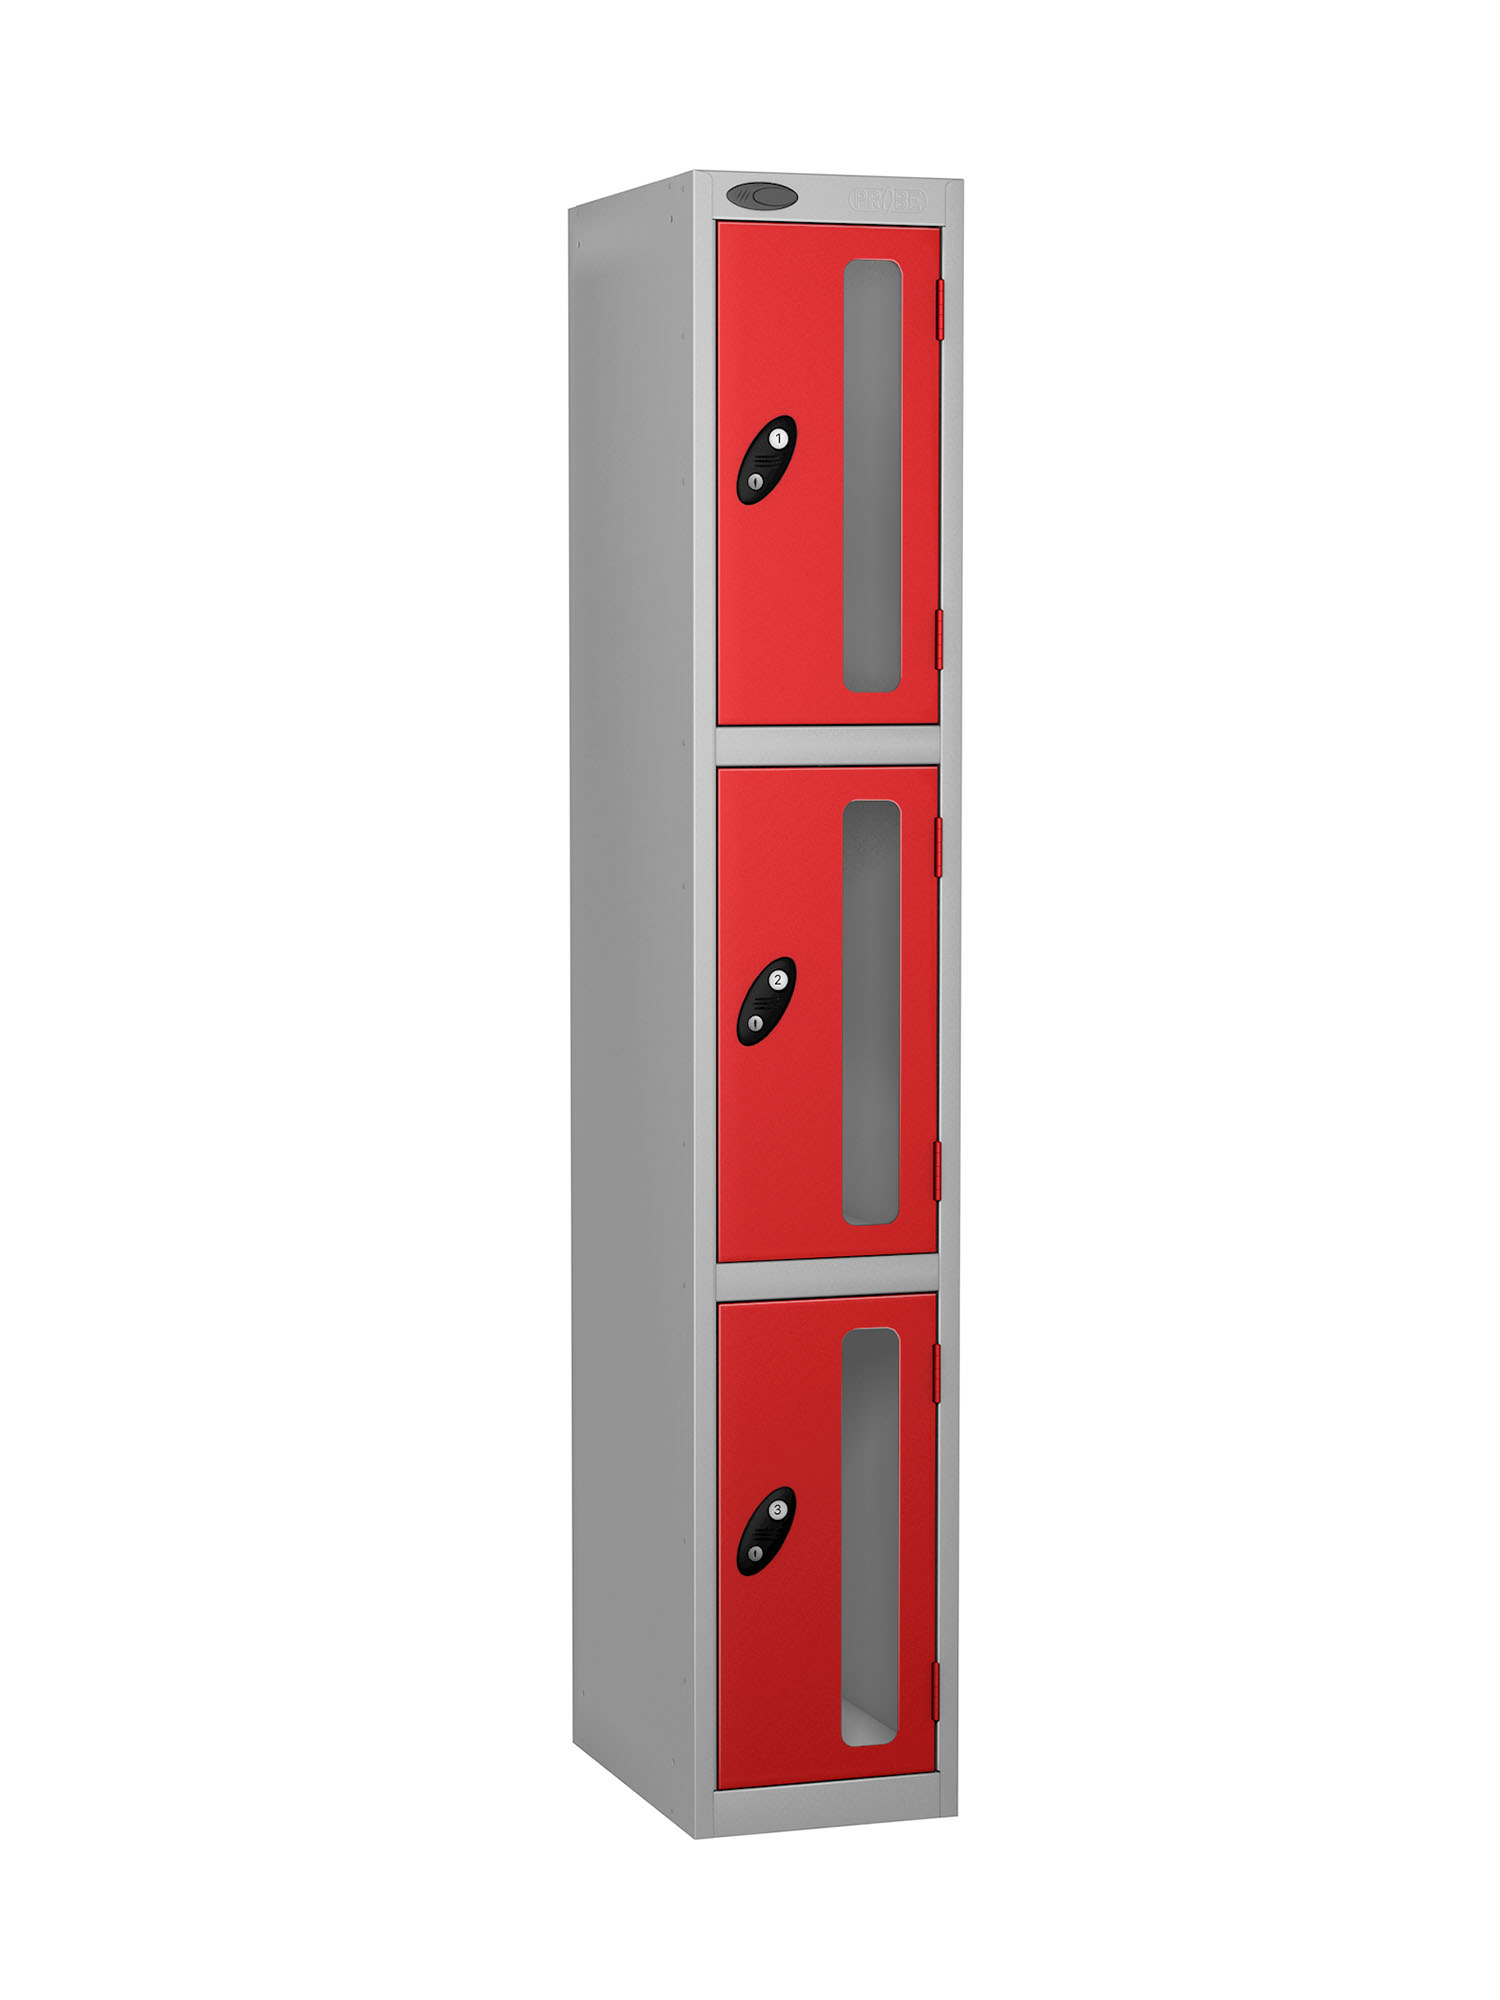 Probe 3 doors vision panel anti-stock theft locker red